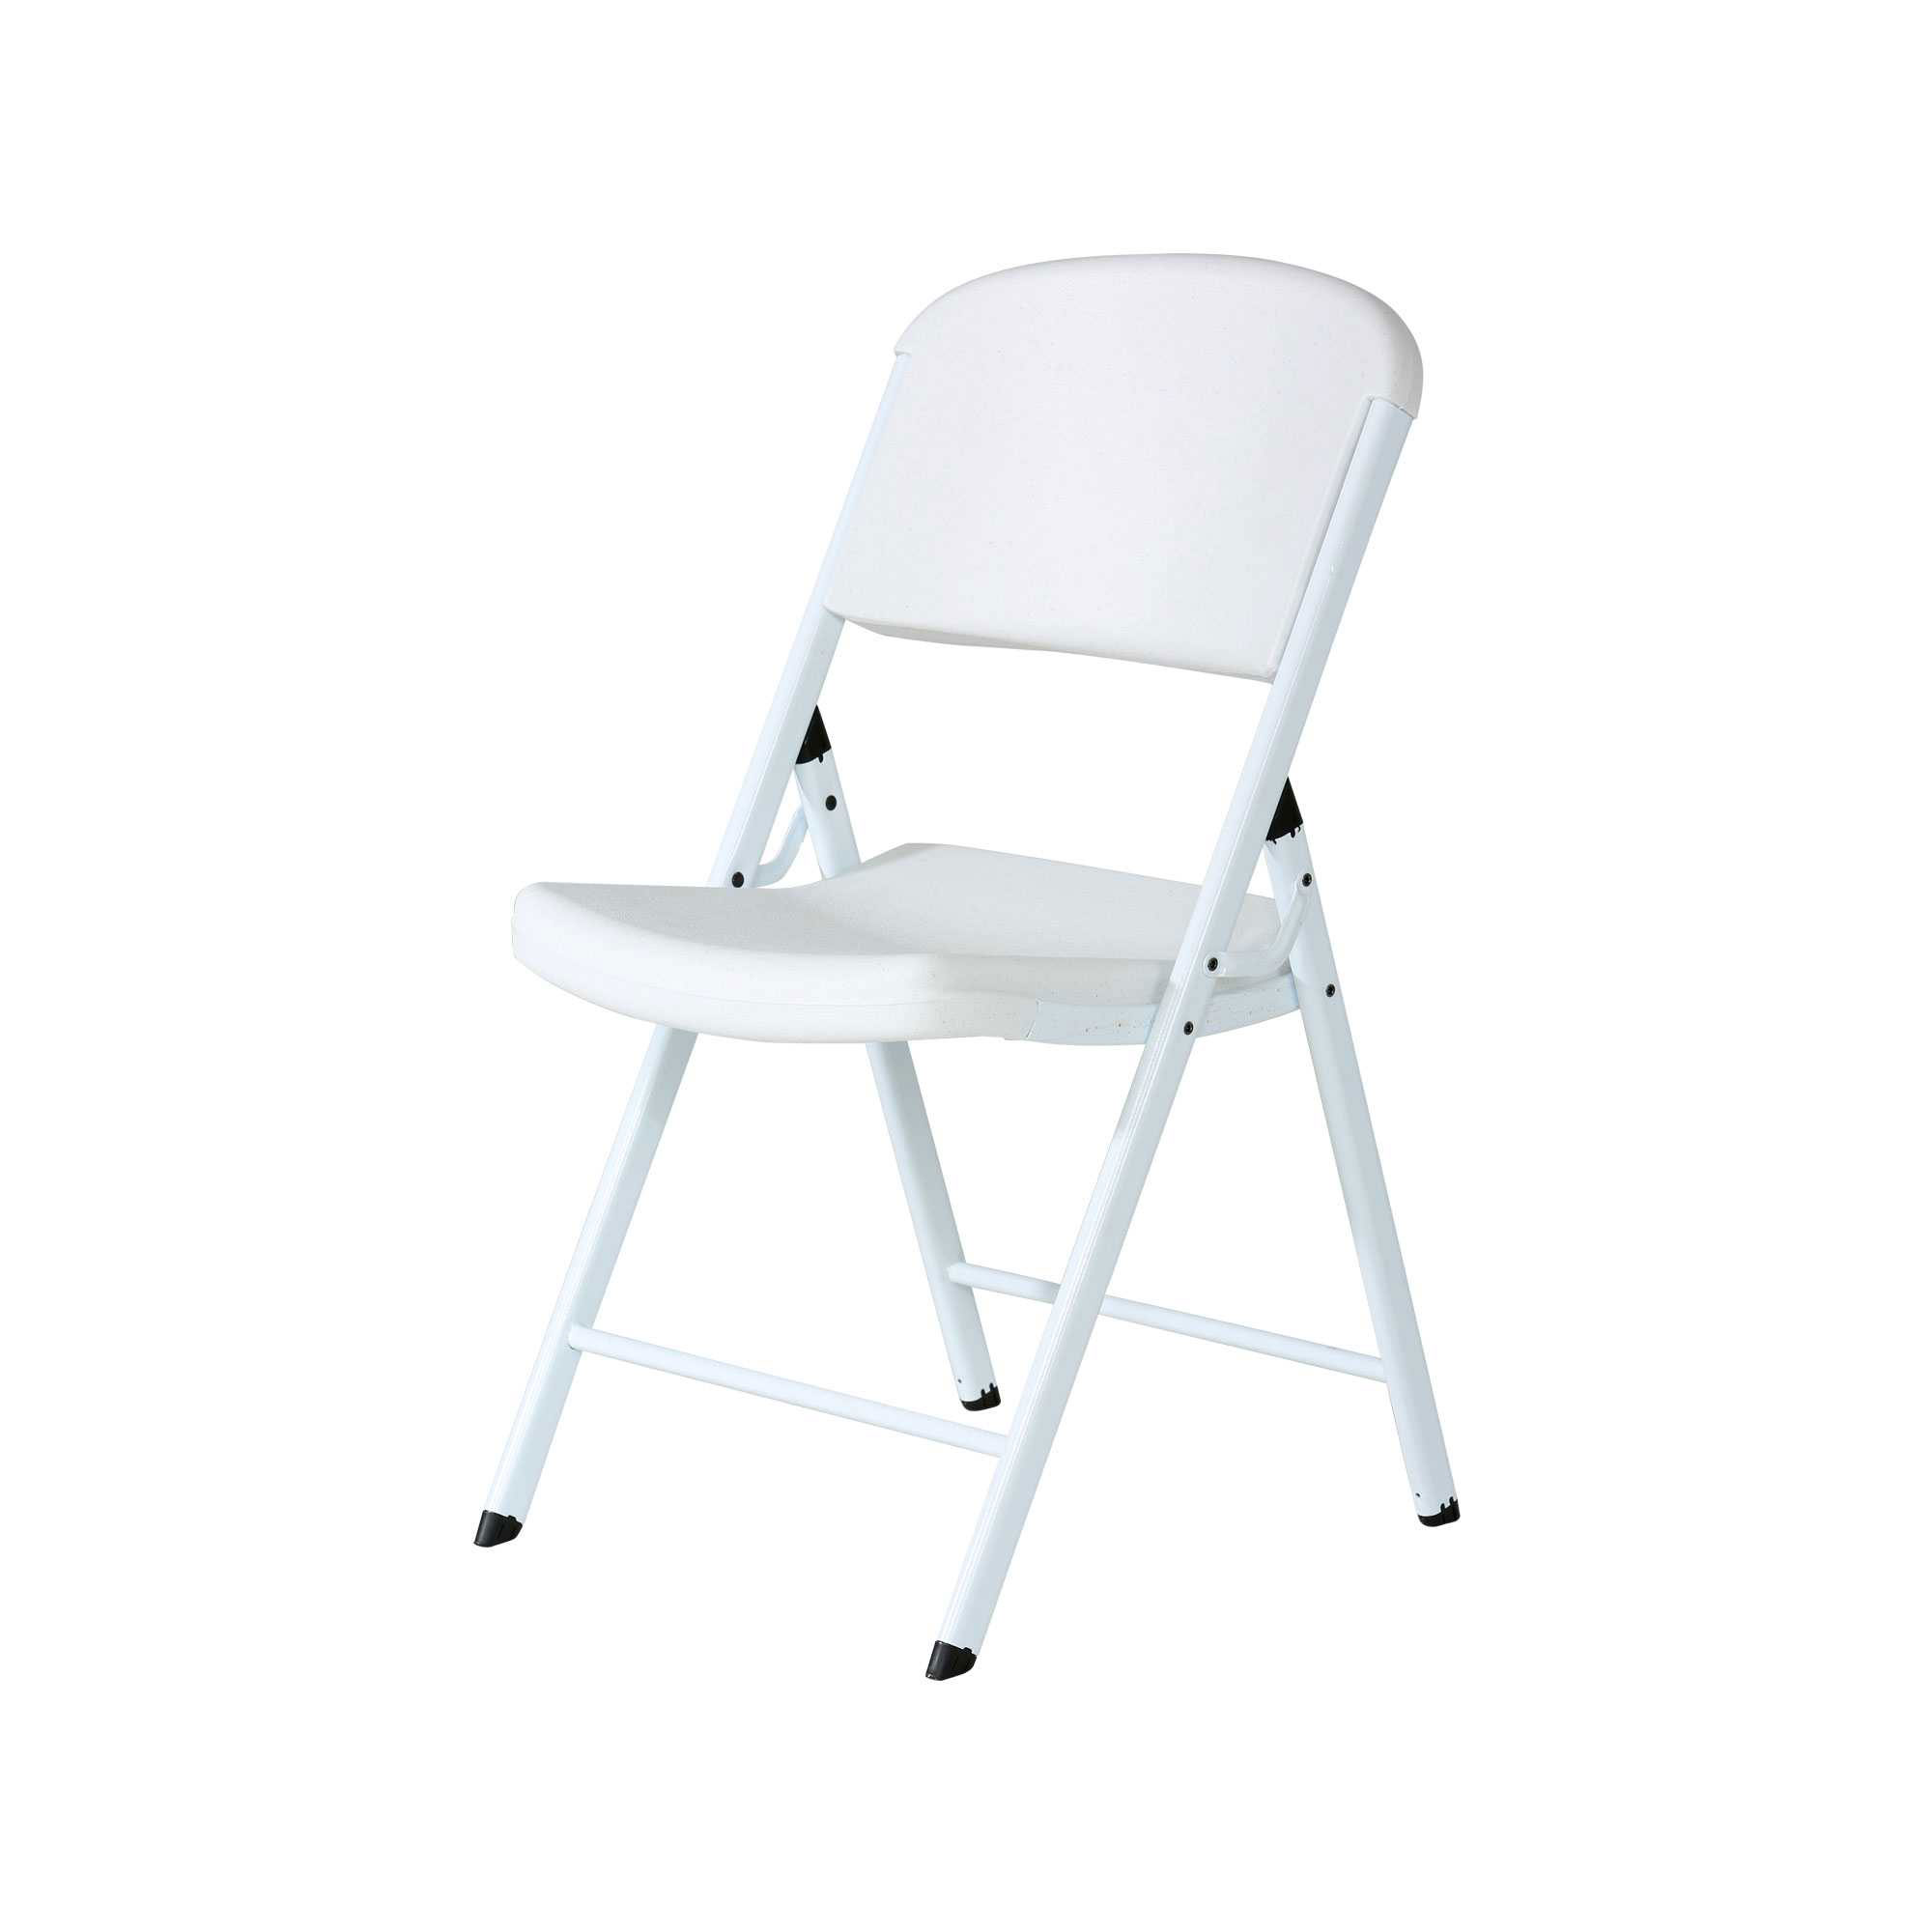 Lifetime Chairs Chairs Model 32 Pack Lifetime Chairs